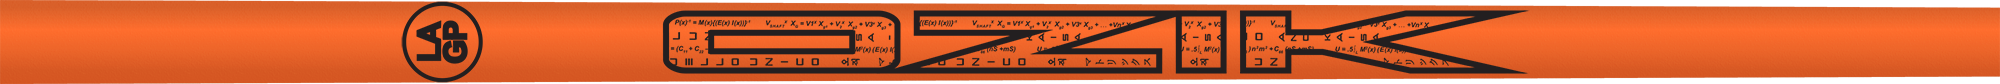 Ozik White Tie: Neon Orange Black Matte - Wood 50 S